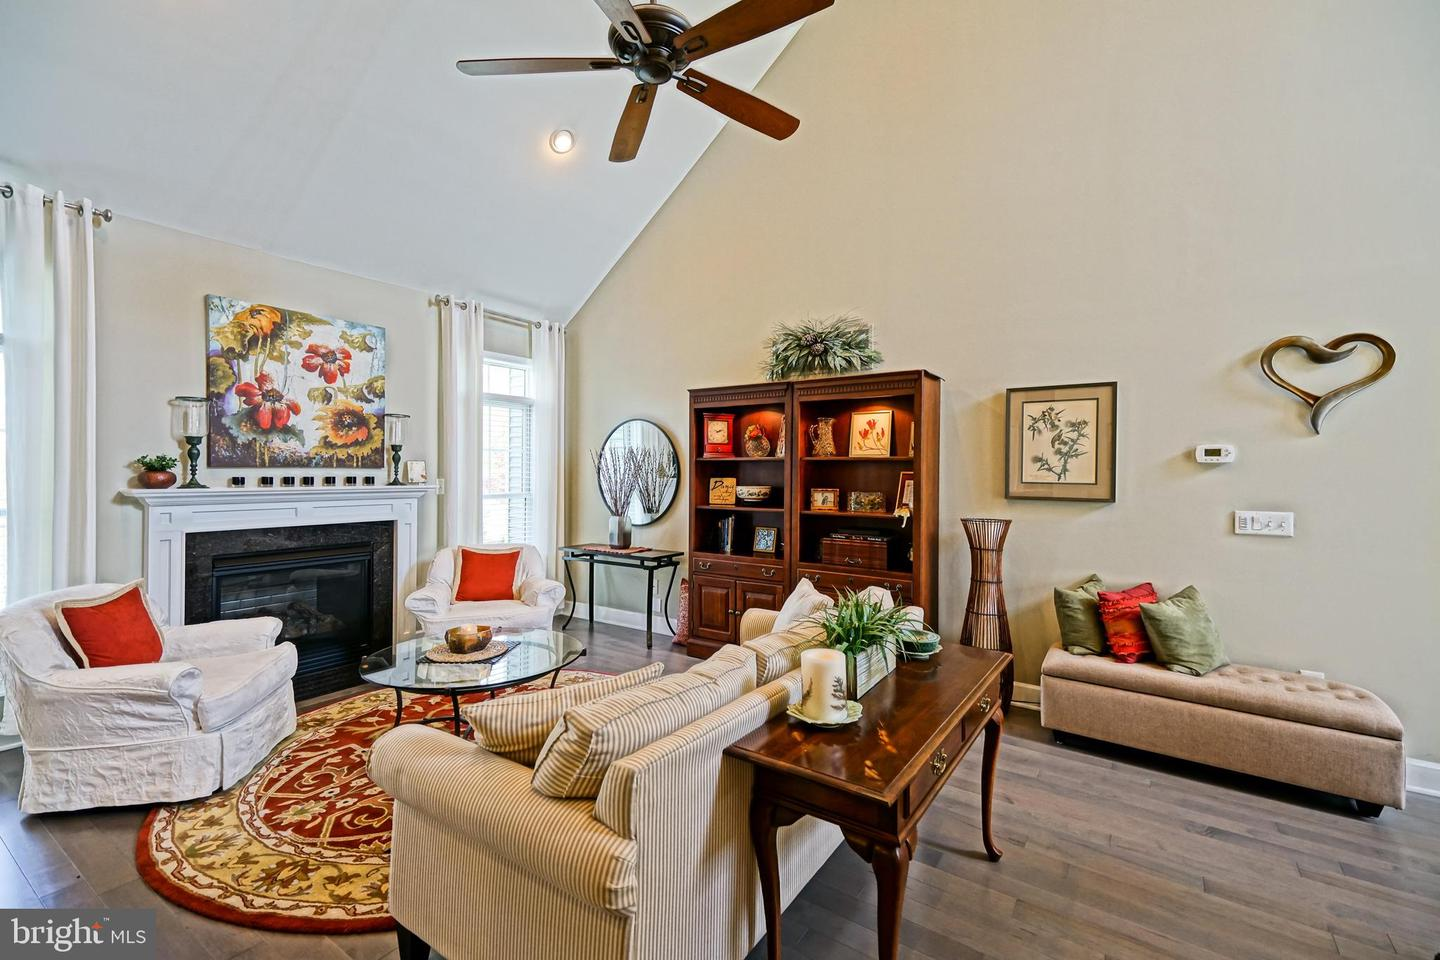 DESU139128-301667379272-2019-08-05-10-43-56 35222 Overfalls Dr N | Lewes, DE Real Estate For Sale | MLS# Desu139128  - Lee Ann Group